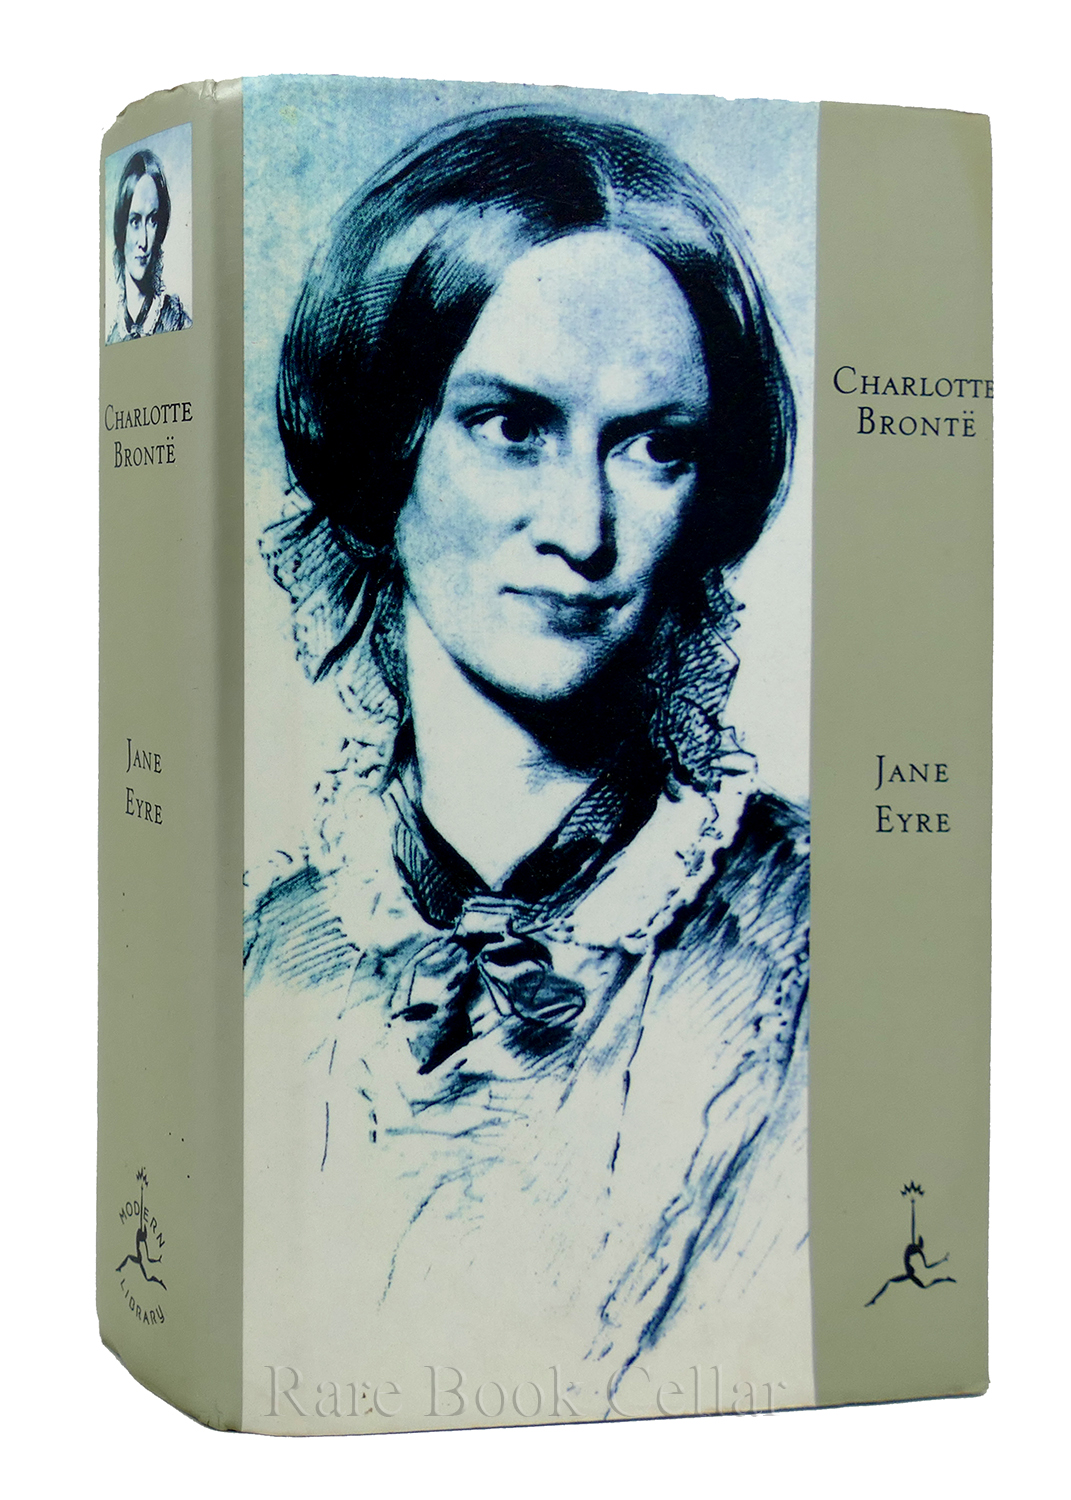 charlotte bronte feminine heroine elaine showalter Charlotte bronte'sreligion 31 thormahlen, gallagher is the first to identify jane eyre as a christian feminist bildungsroman published in 1847 when bronte was thirty-one, jane eyre is at least partly autobiographical, which opens the possibility for.